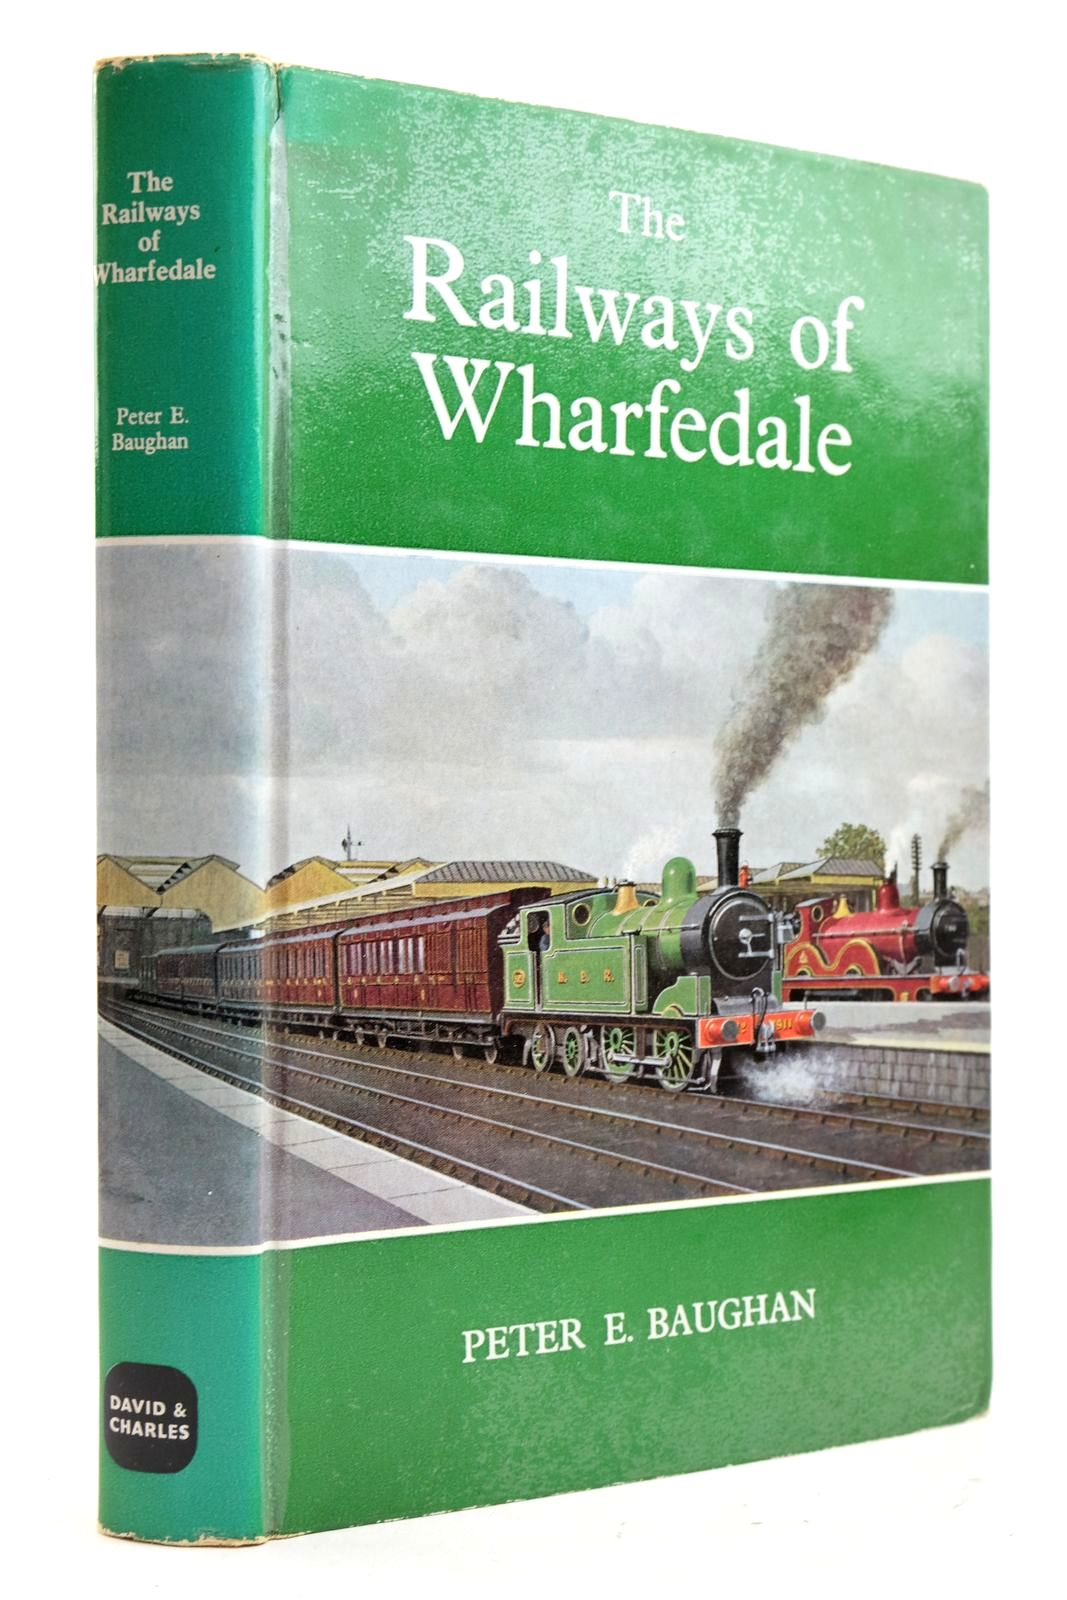 Photo of THE RAILWAYS OF WHARFEDALE written by Baughan, Peter E. published by David & Charles (STOCK CODE: 2133048)  for sale by Stella & Rose's Books